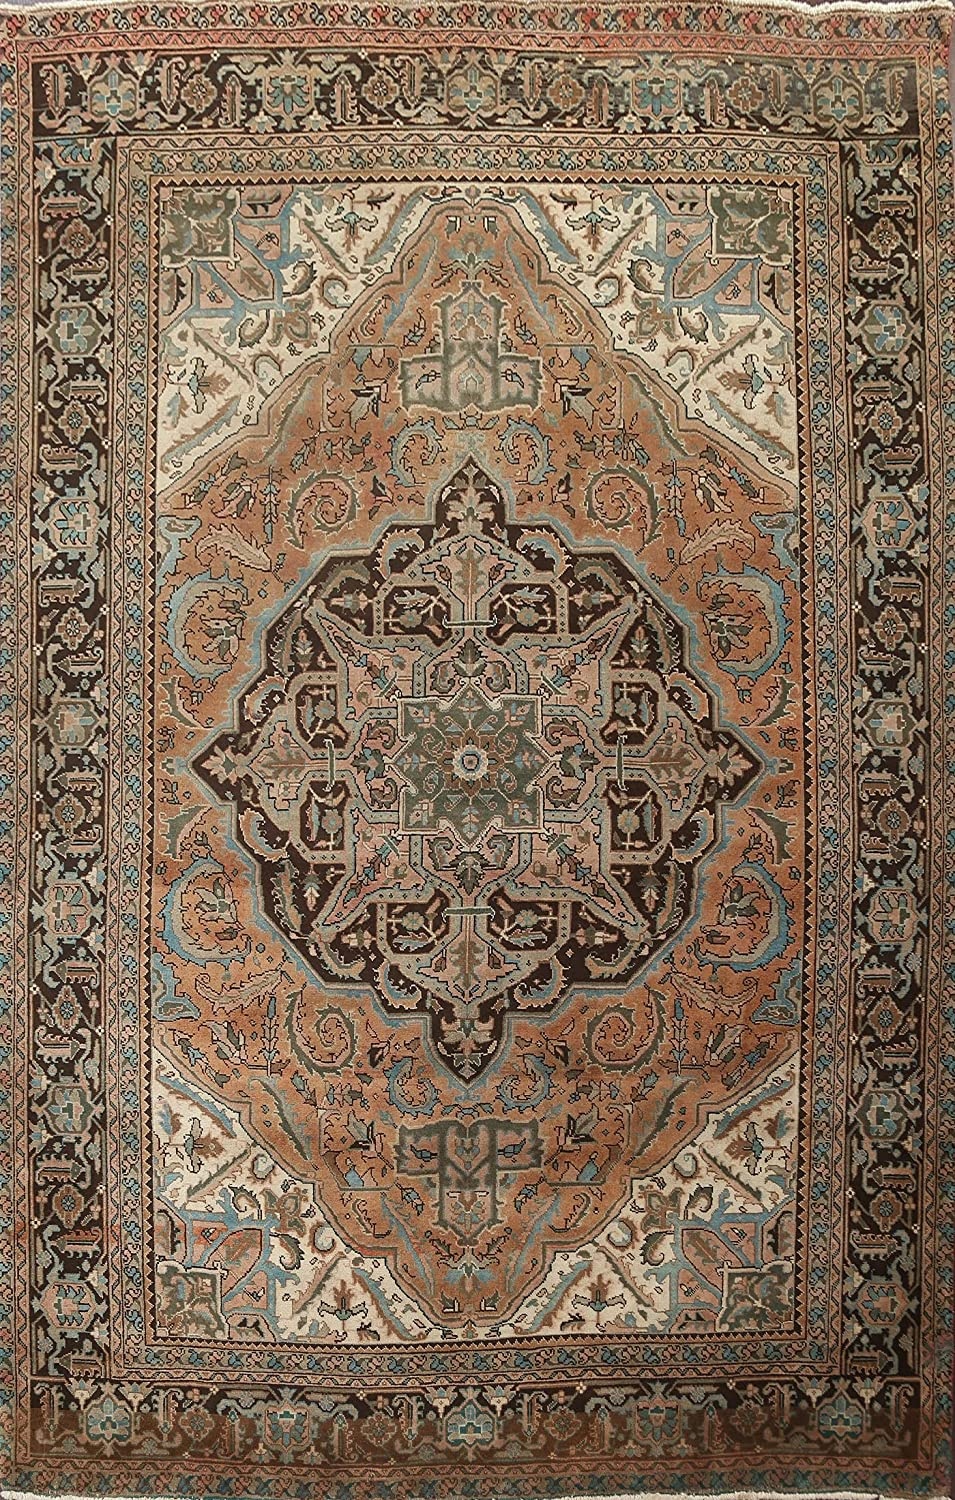 Floral Heriz Max 51% OFF 2021 autumn and winter new Oriental Rug Hand-Knotted Carpet 8 Room Living Wool